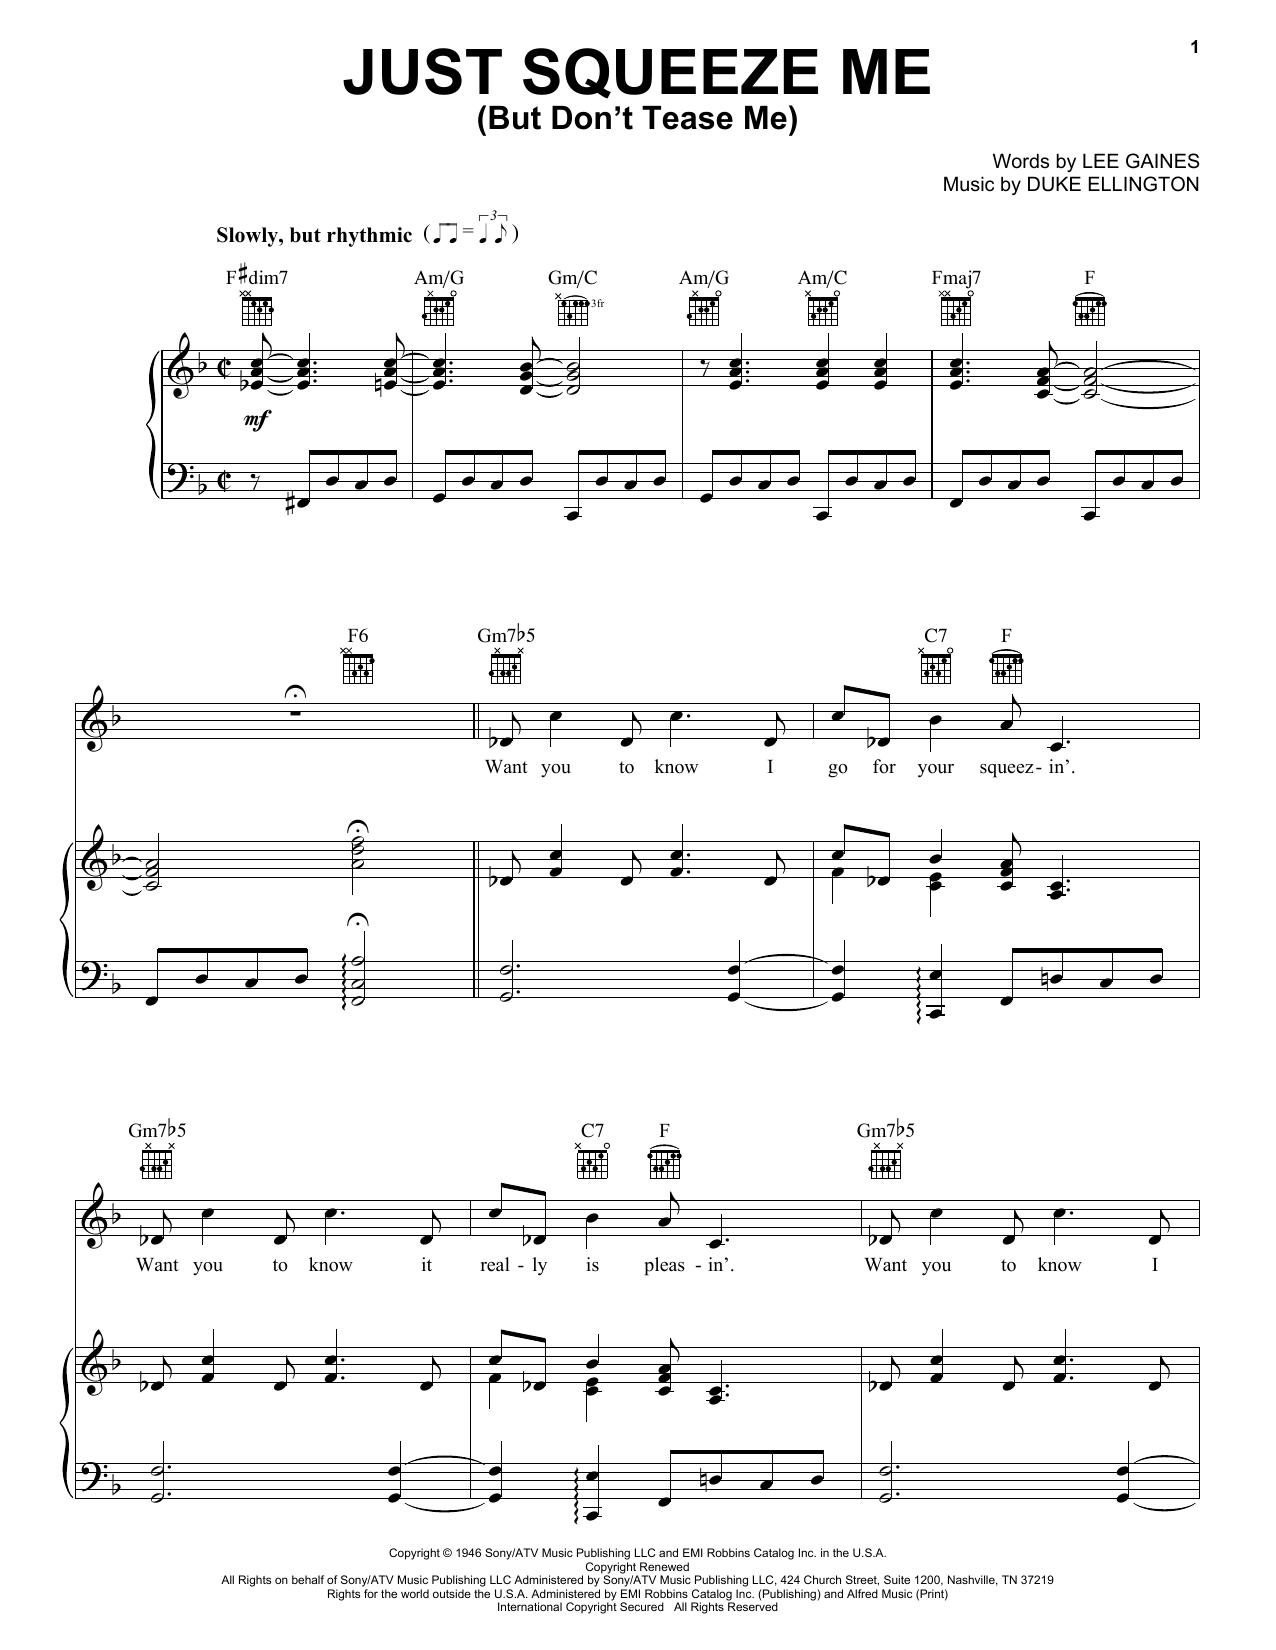 Duke Ellington Just Squeeze Me (But Don't Tease Me) sheet music notes and chords. Download Printable PDF.